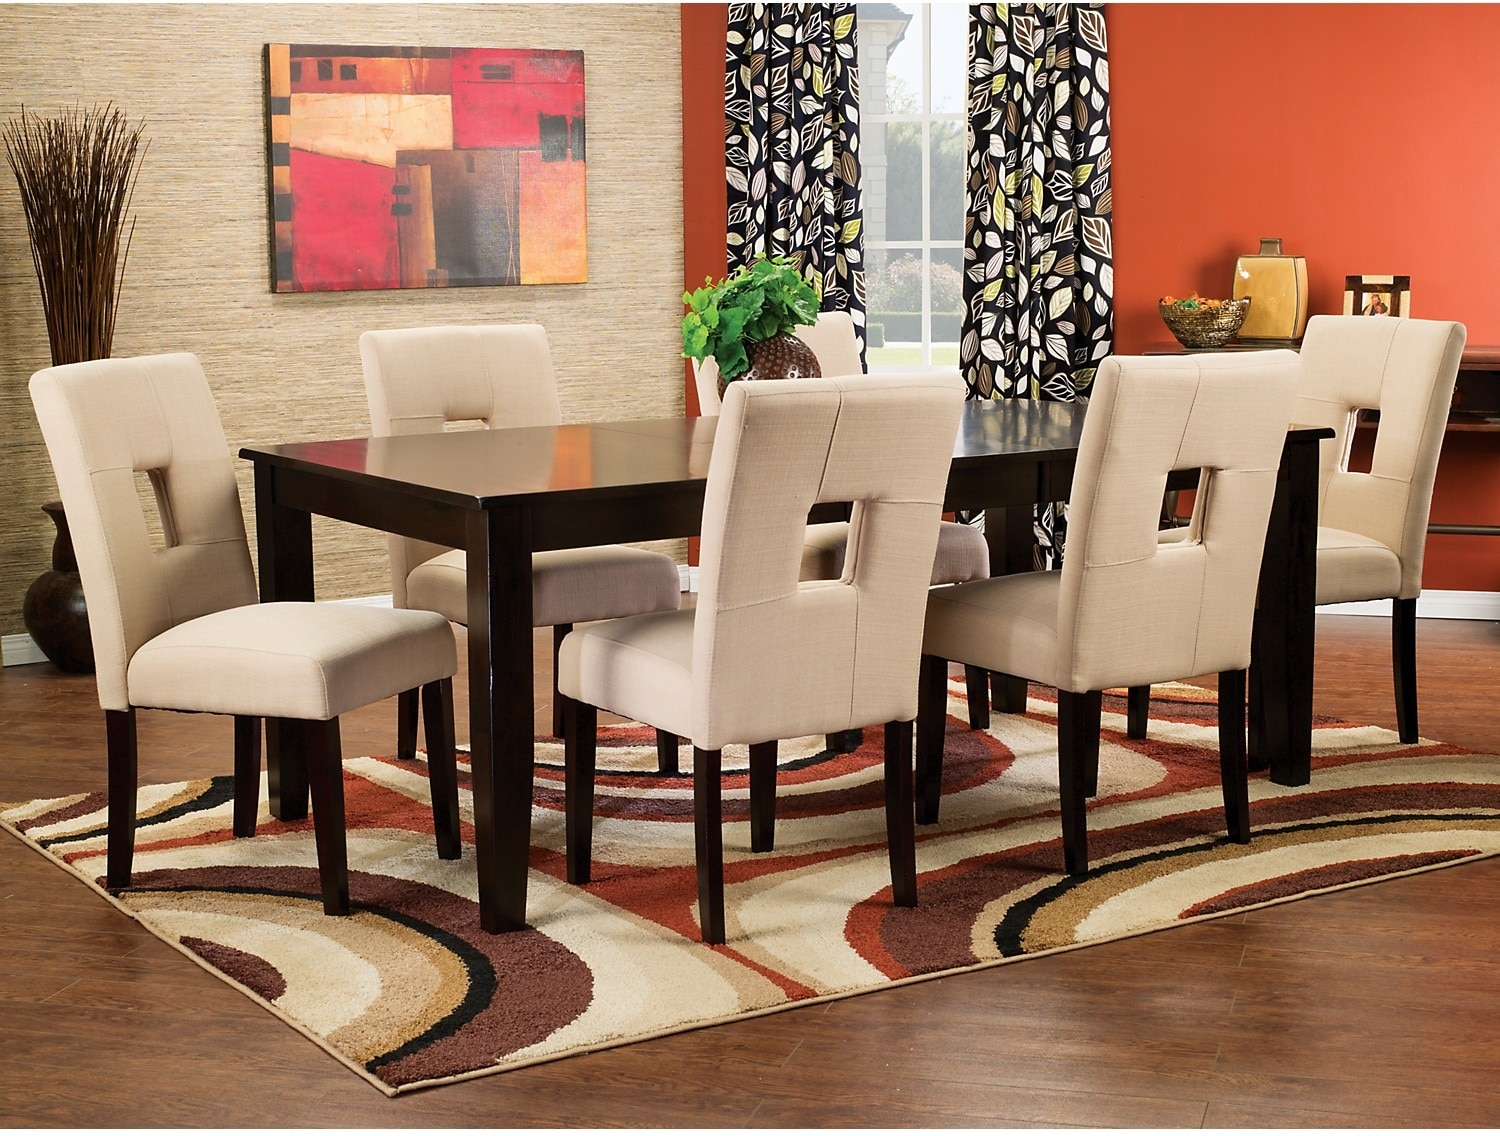 Dakota 7-Piece Dining Package with Beige Chairs